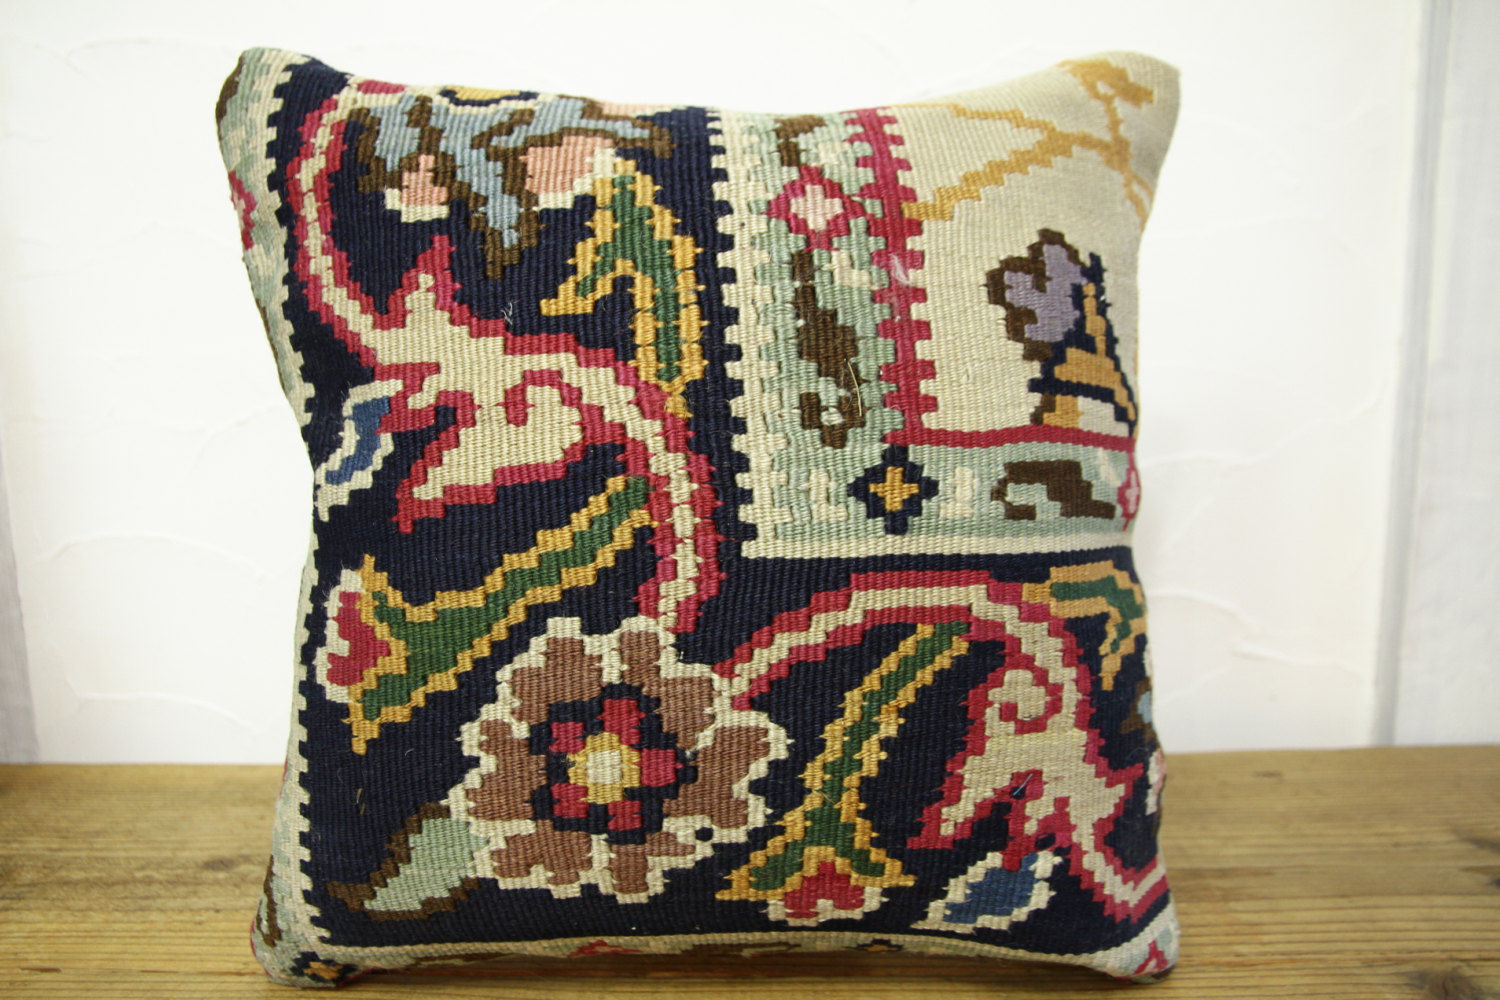 Kilim Pillows |16x16 | Decorative Pillows | 424 | Accent Pillows, Kilim cushion